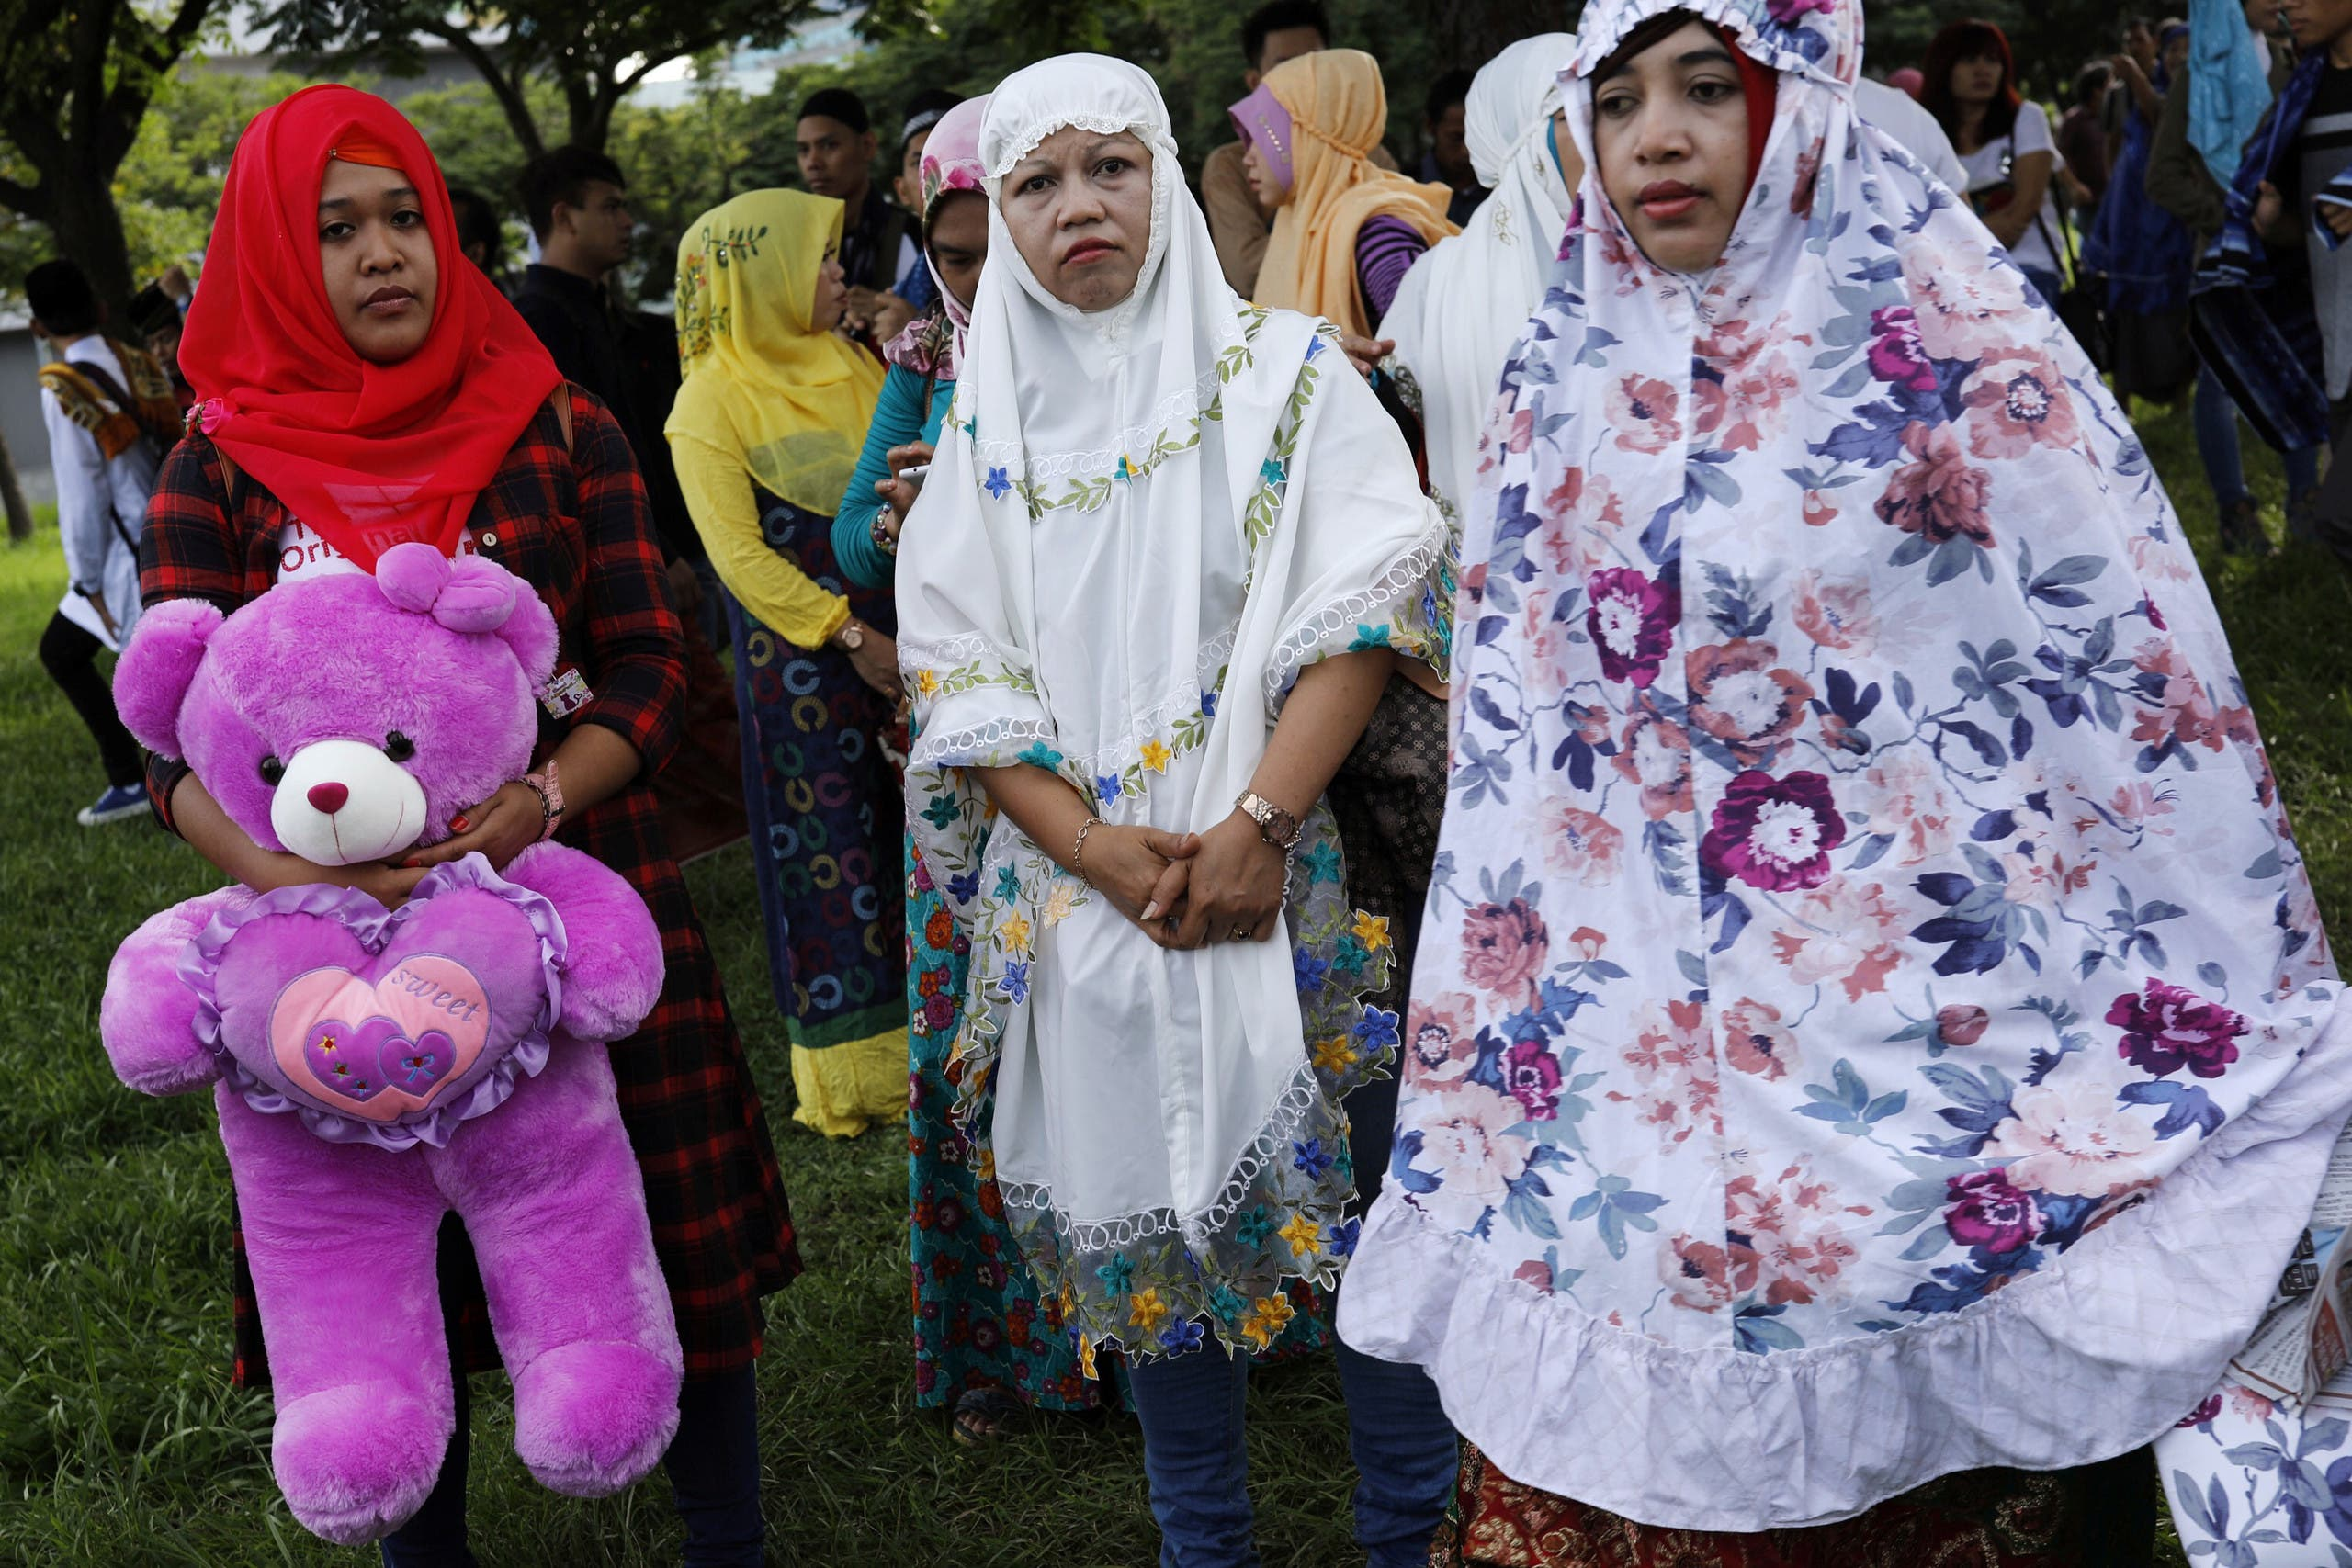 A Muslim woman hold a doll as she attend Eid al-Fitr prayers to mark the end of the holy fasting month of Ramadan in Taipei , Taiwan June 25, 2017. REUTERS/Tyrone Siu